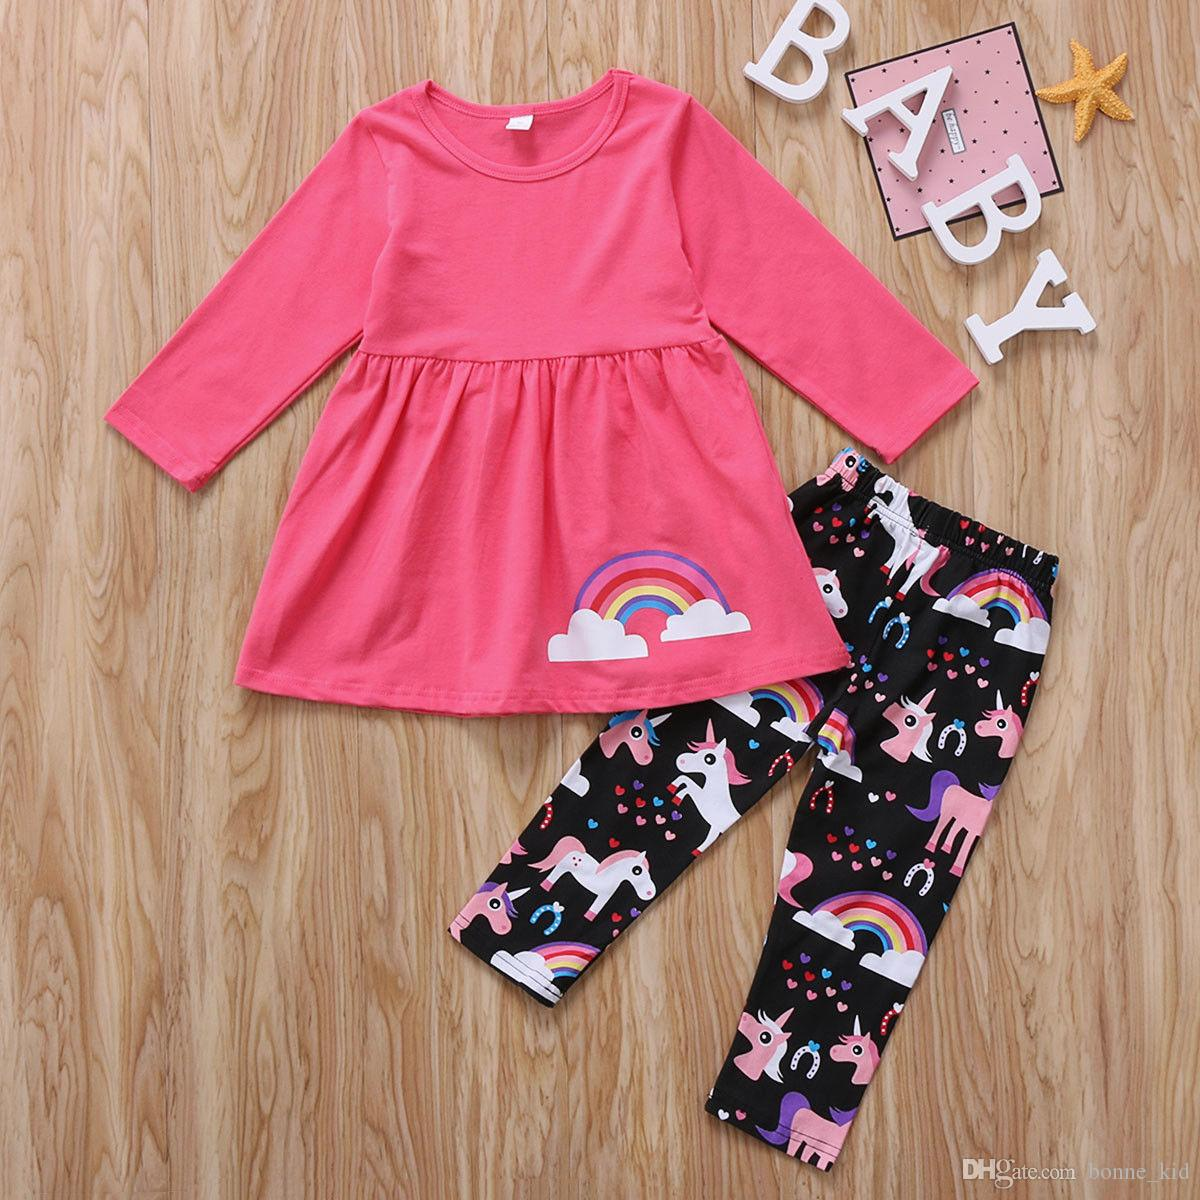 e04c79850 Baby girl clothes outfit unicorn rainbow pink T-shirt top + pant 2 pieces a  set lovely girls kid clothing preppy dress wholesale suits